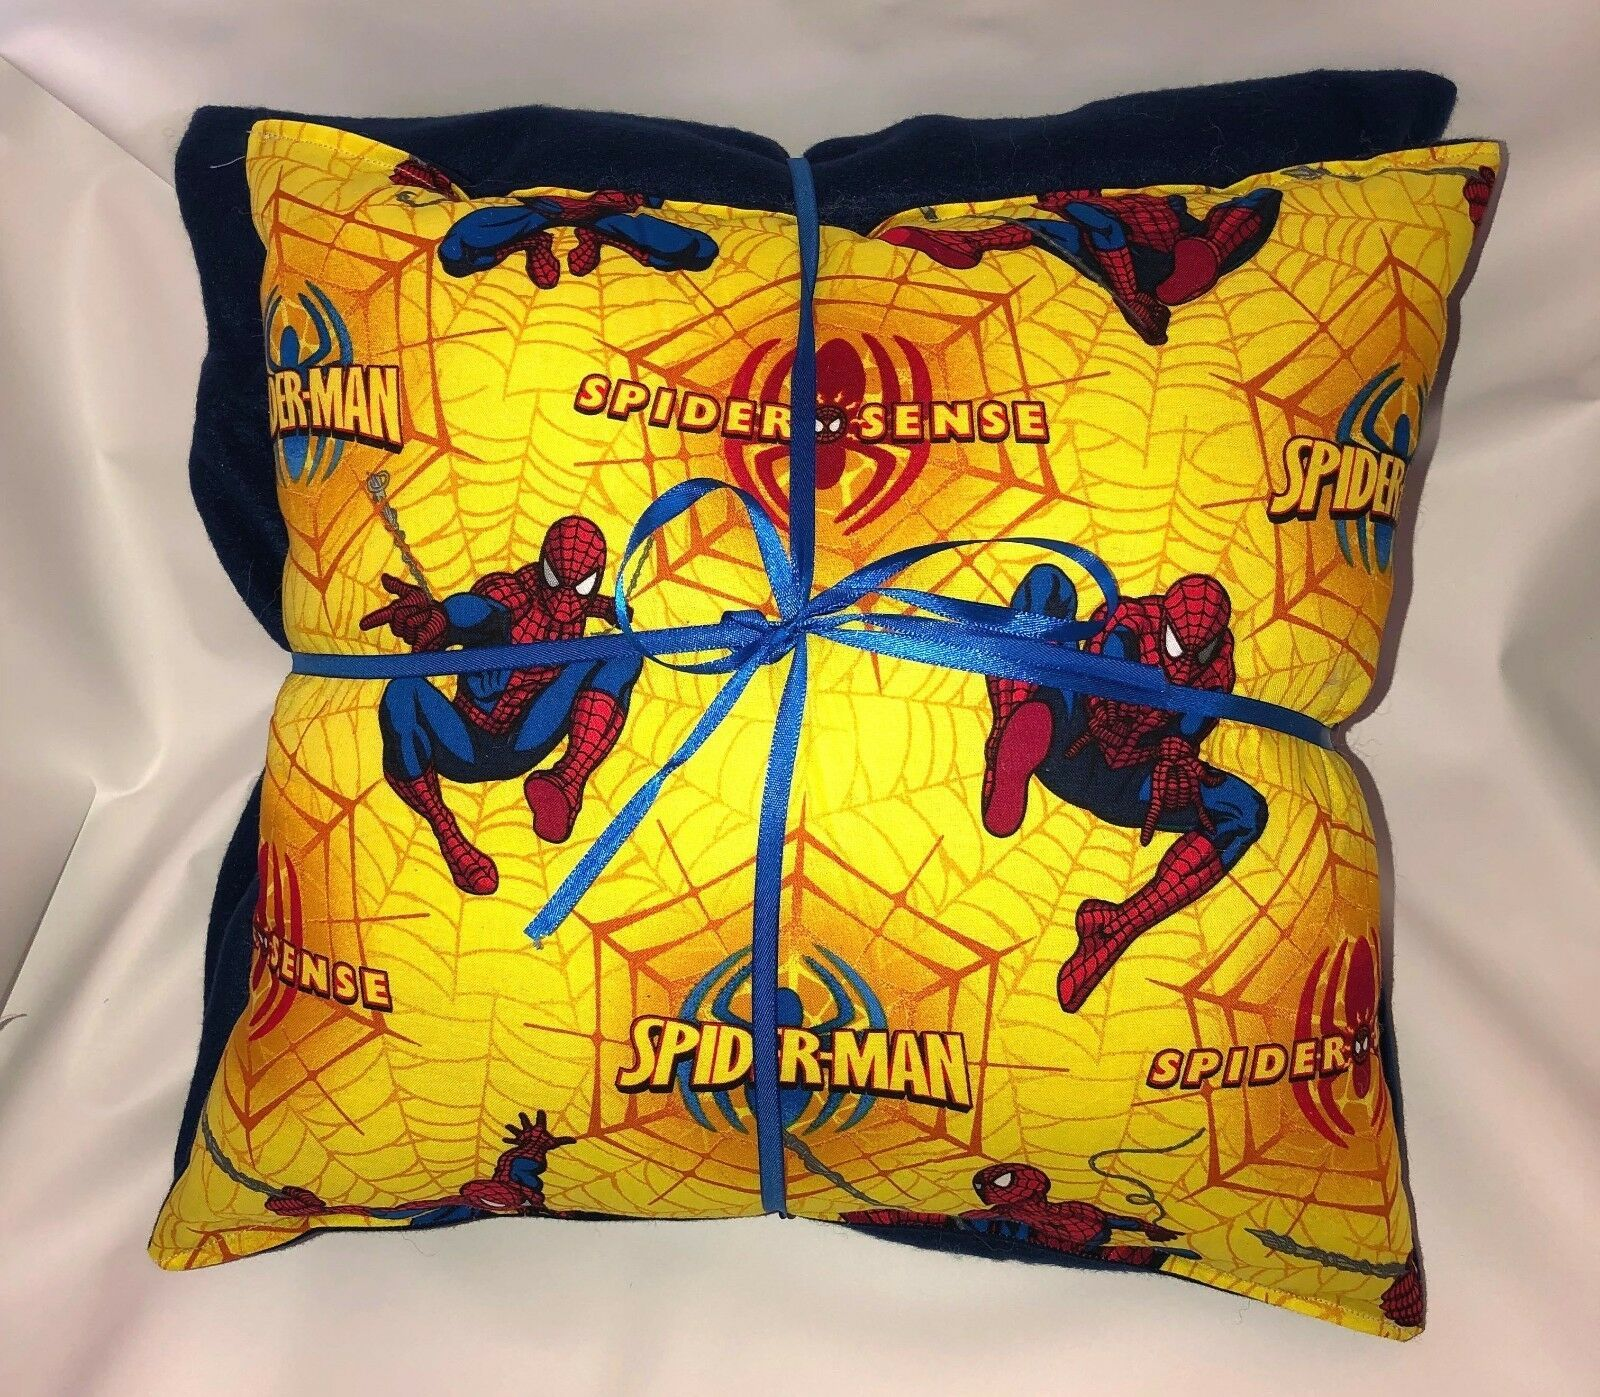 Spider-Man Pillow And Blanket Marvel Spider Man Yellow Pillow and Blanket Set